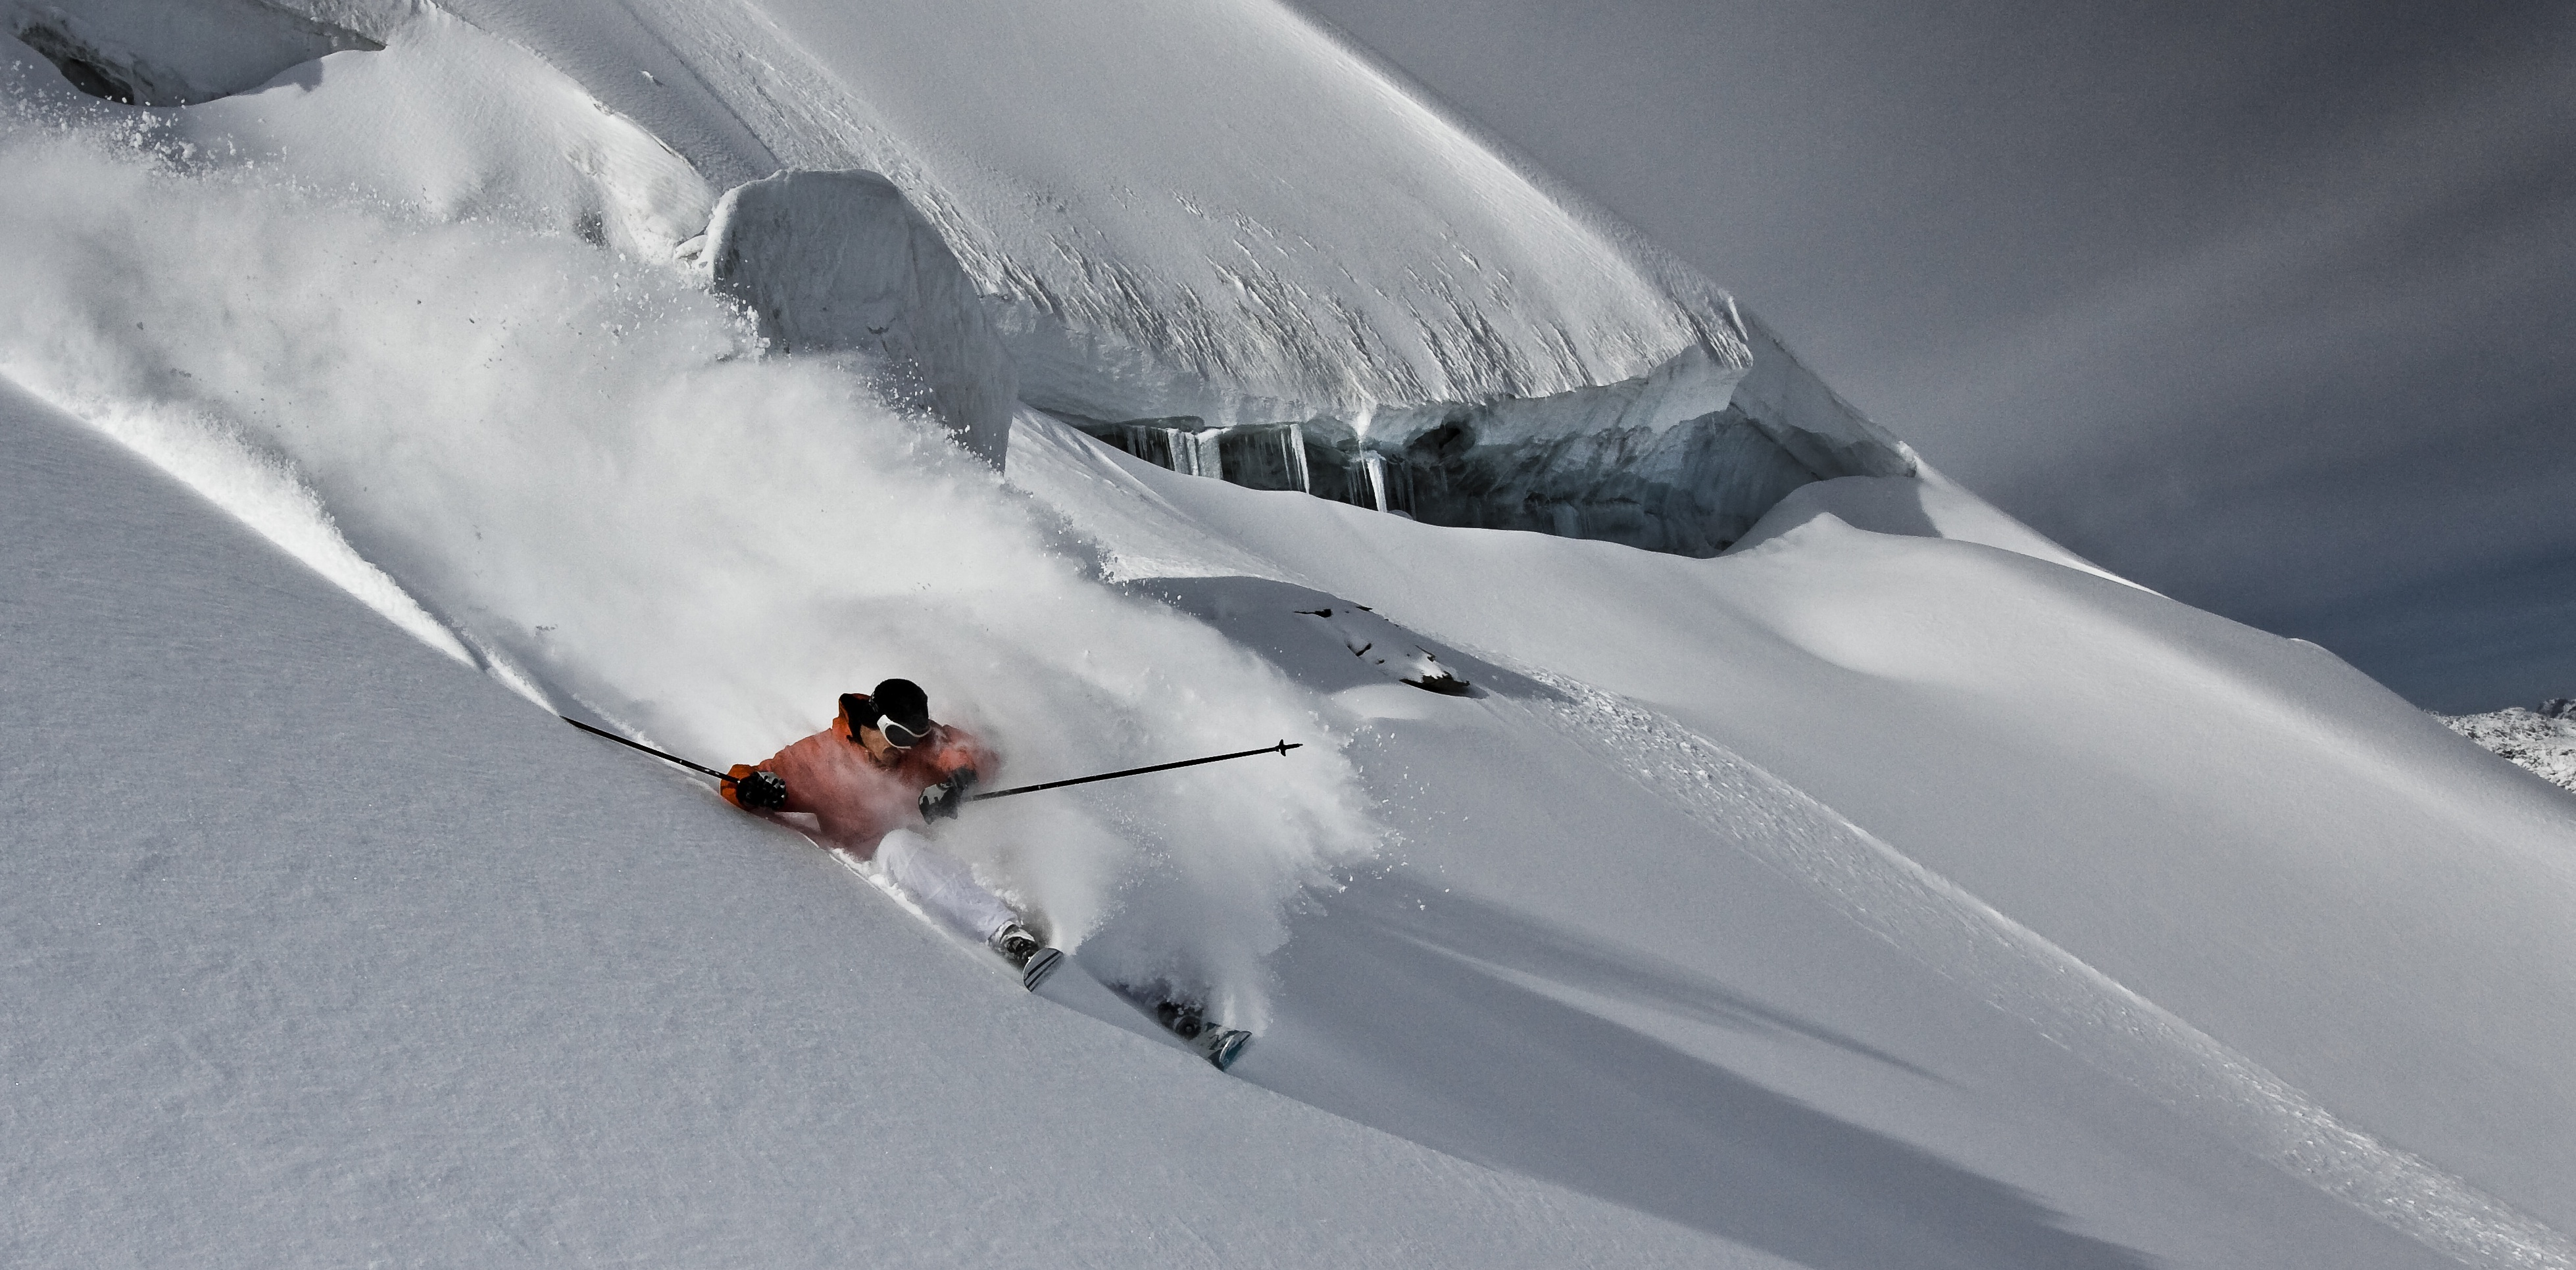 Conditions still excellent for investing in property in the Alps